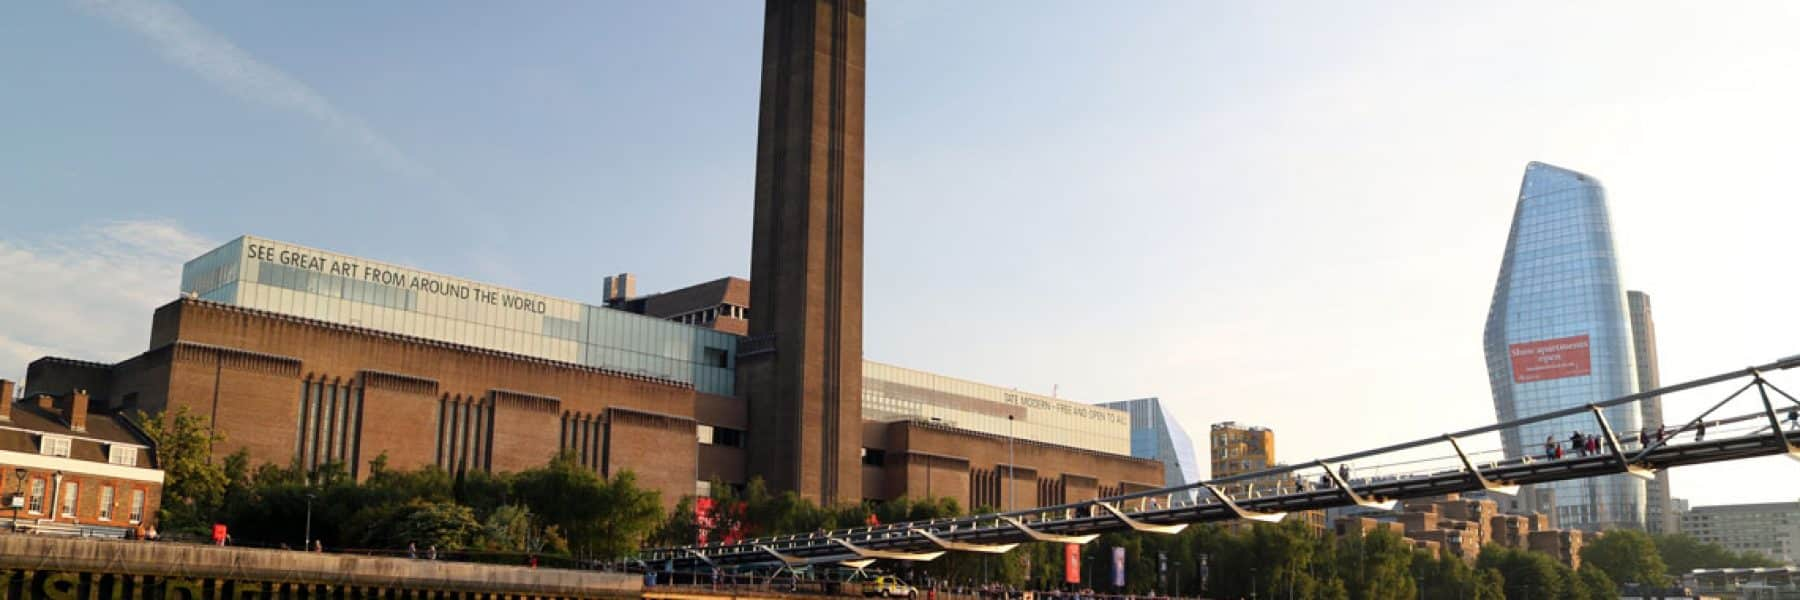 Tate Modern Art Gallery & the Millennium Footbridge in the evening